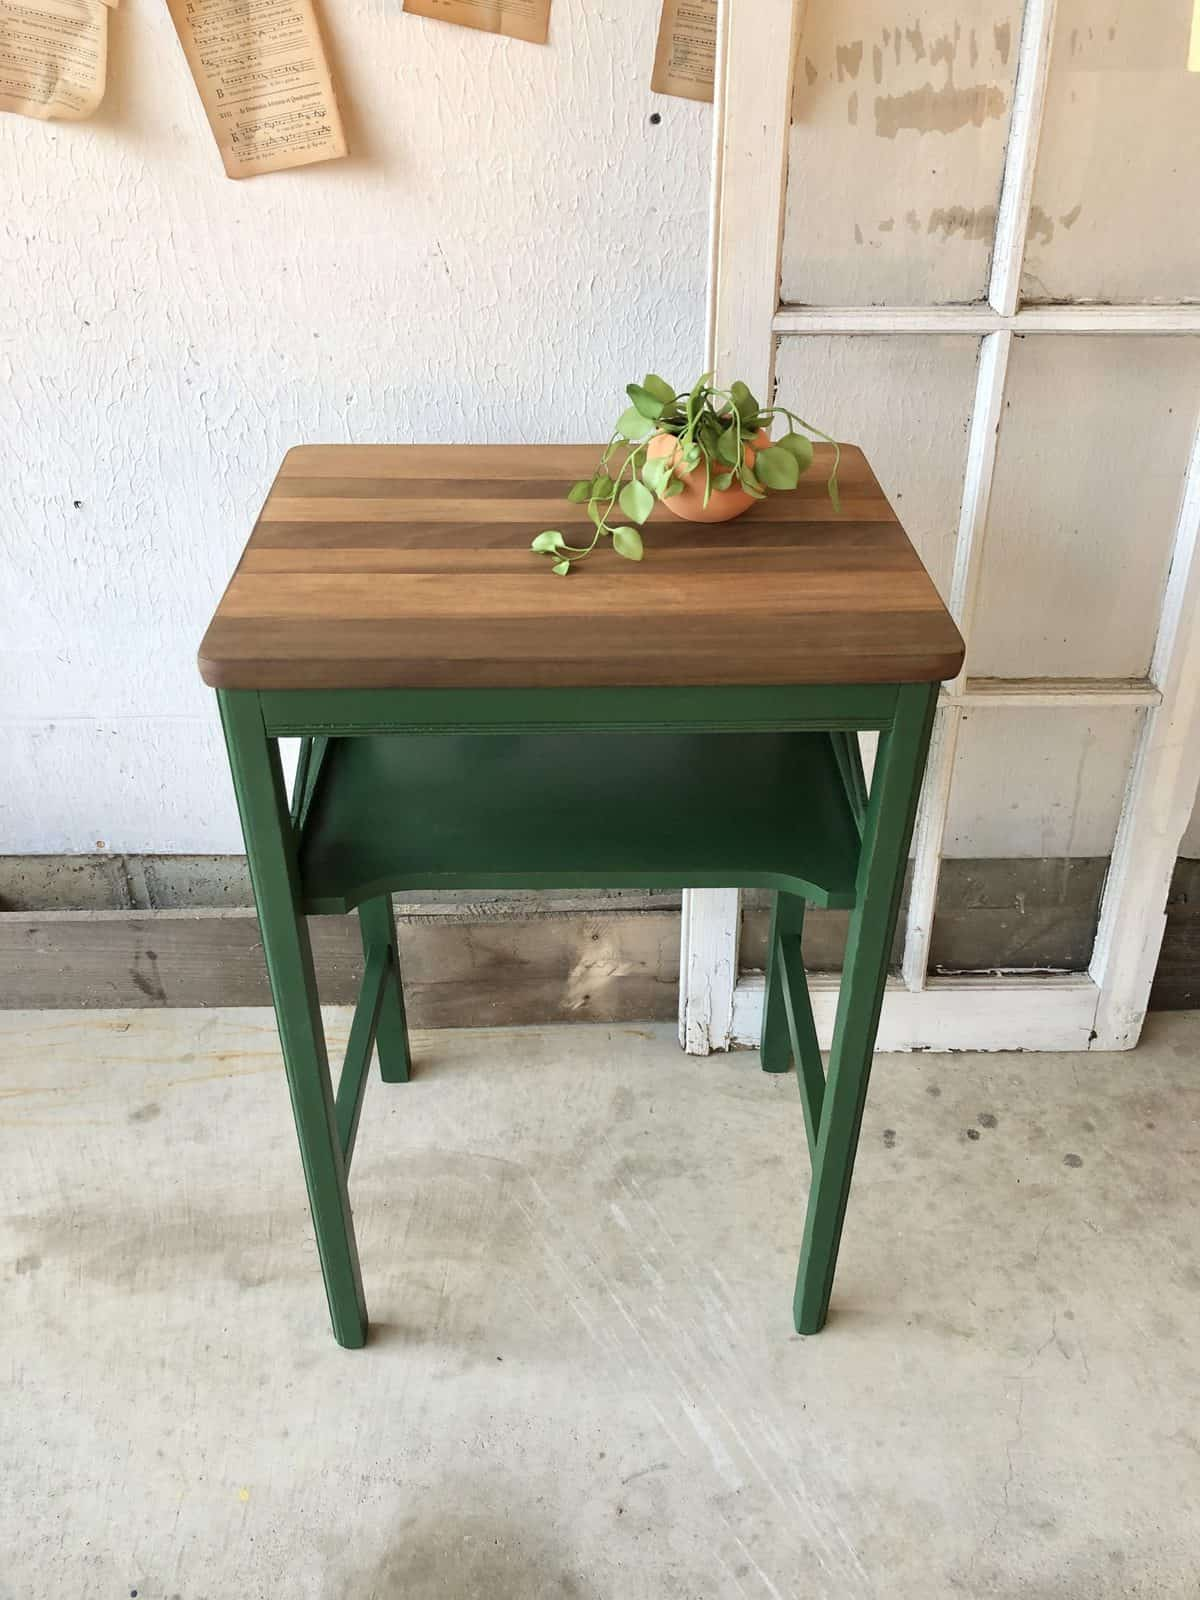 Fireworks emerald green painted side table in chalk style furniture paint